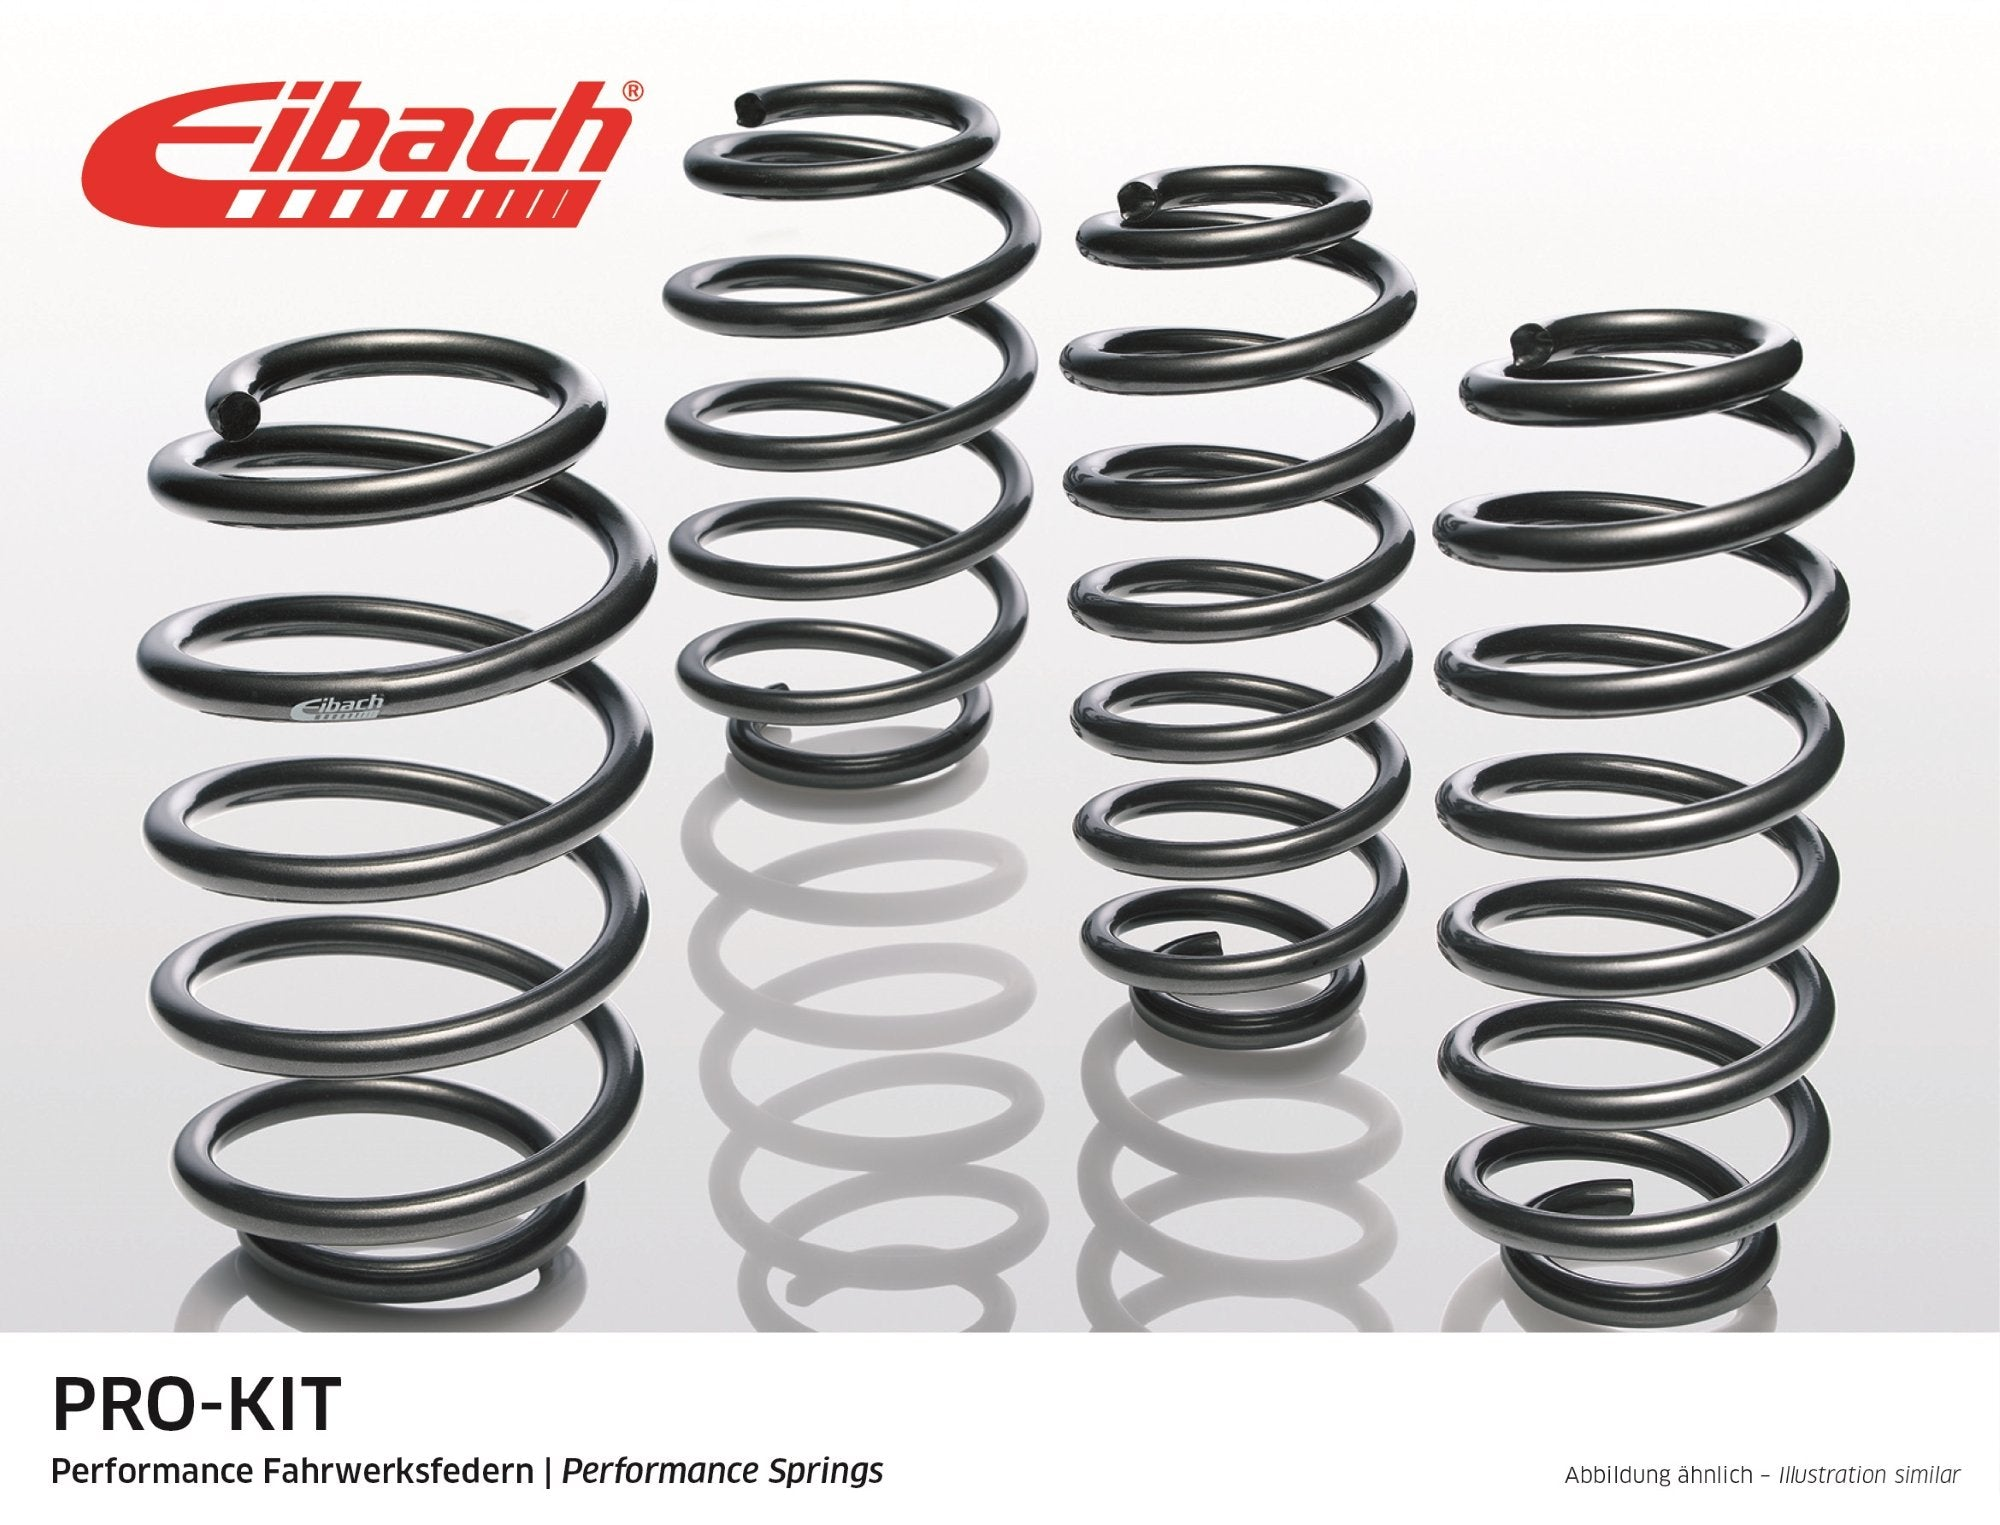 Eibach Mercedes Benz R-Class W251 Pro-Kit Performance Spring Kit